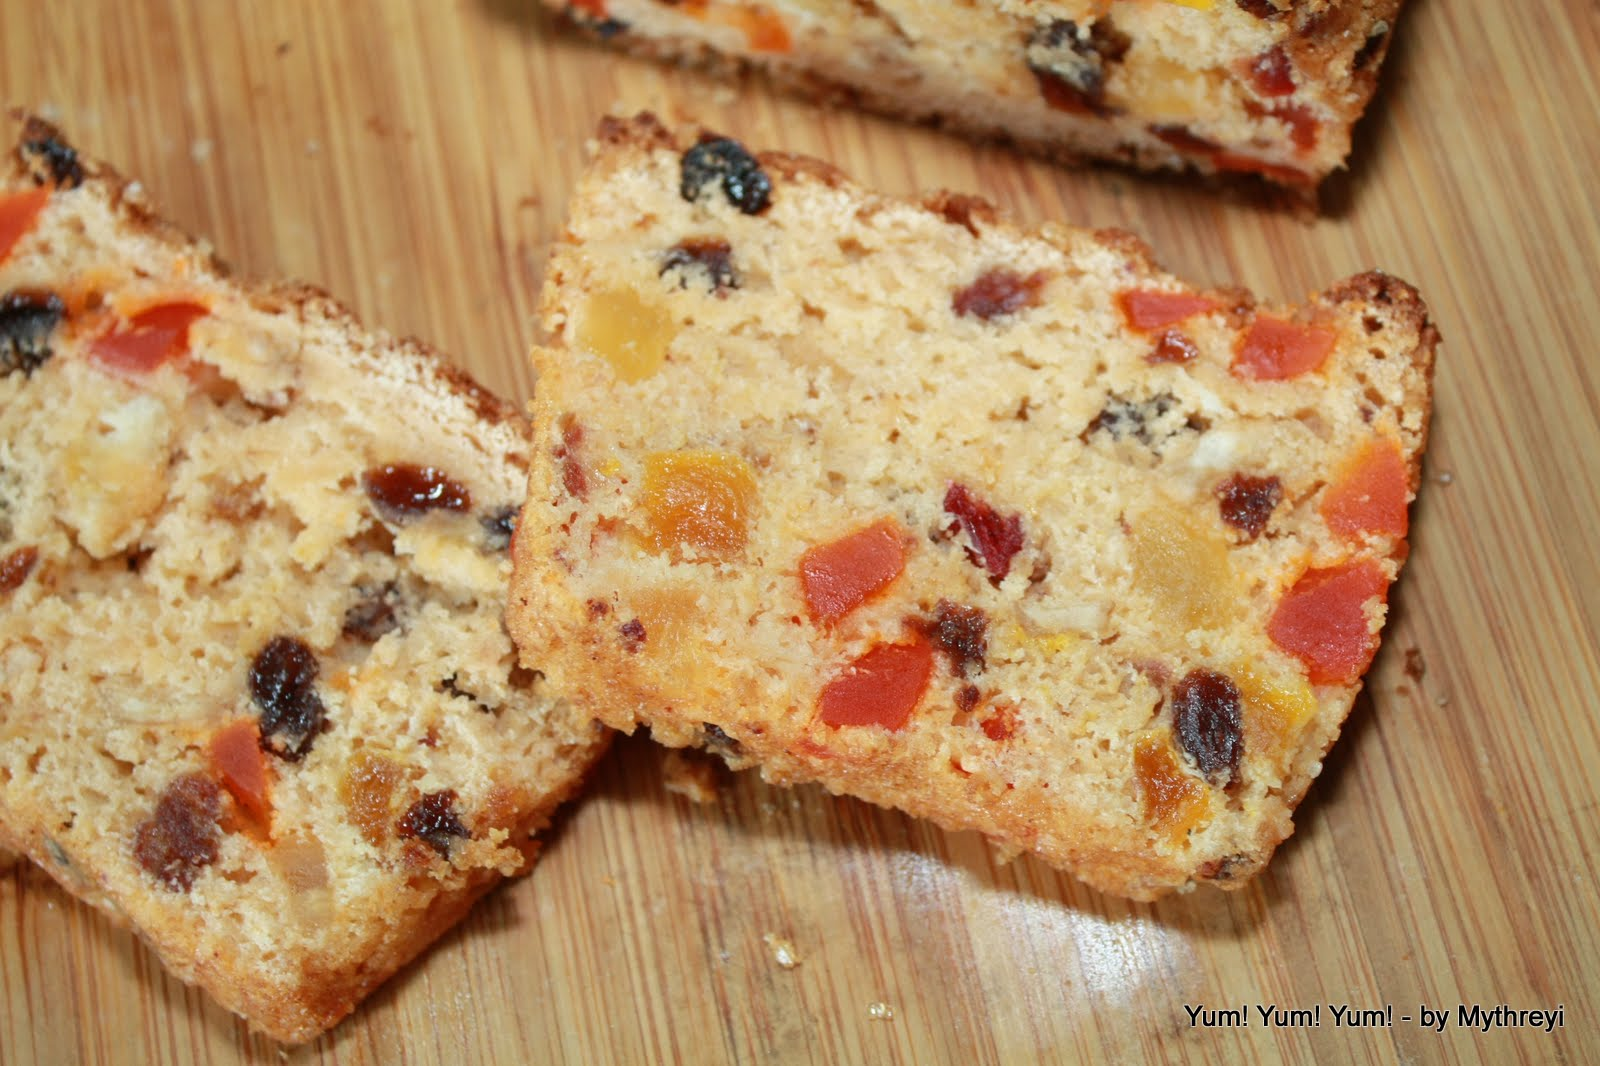 Yum! Yum! Yum!: Fruit Tea Bread (Quick 'n' Easy)